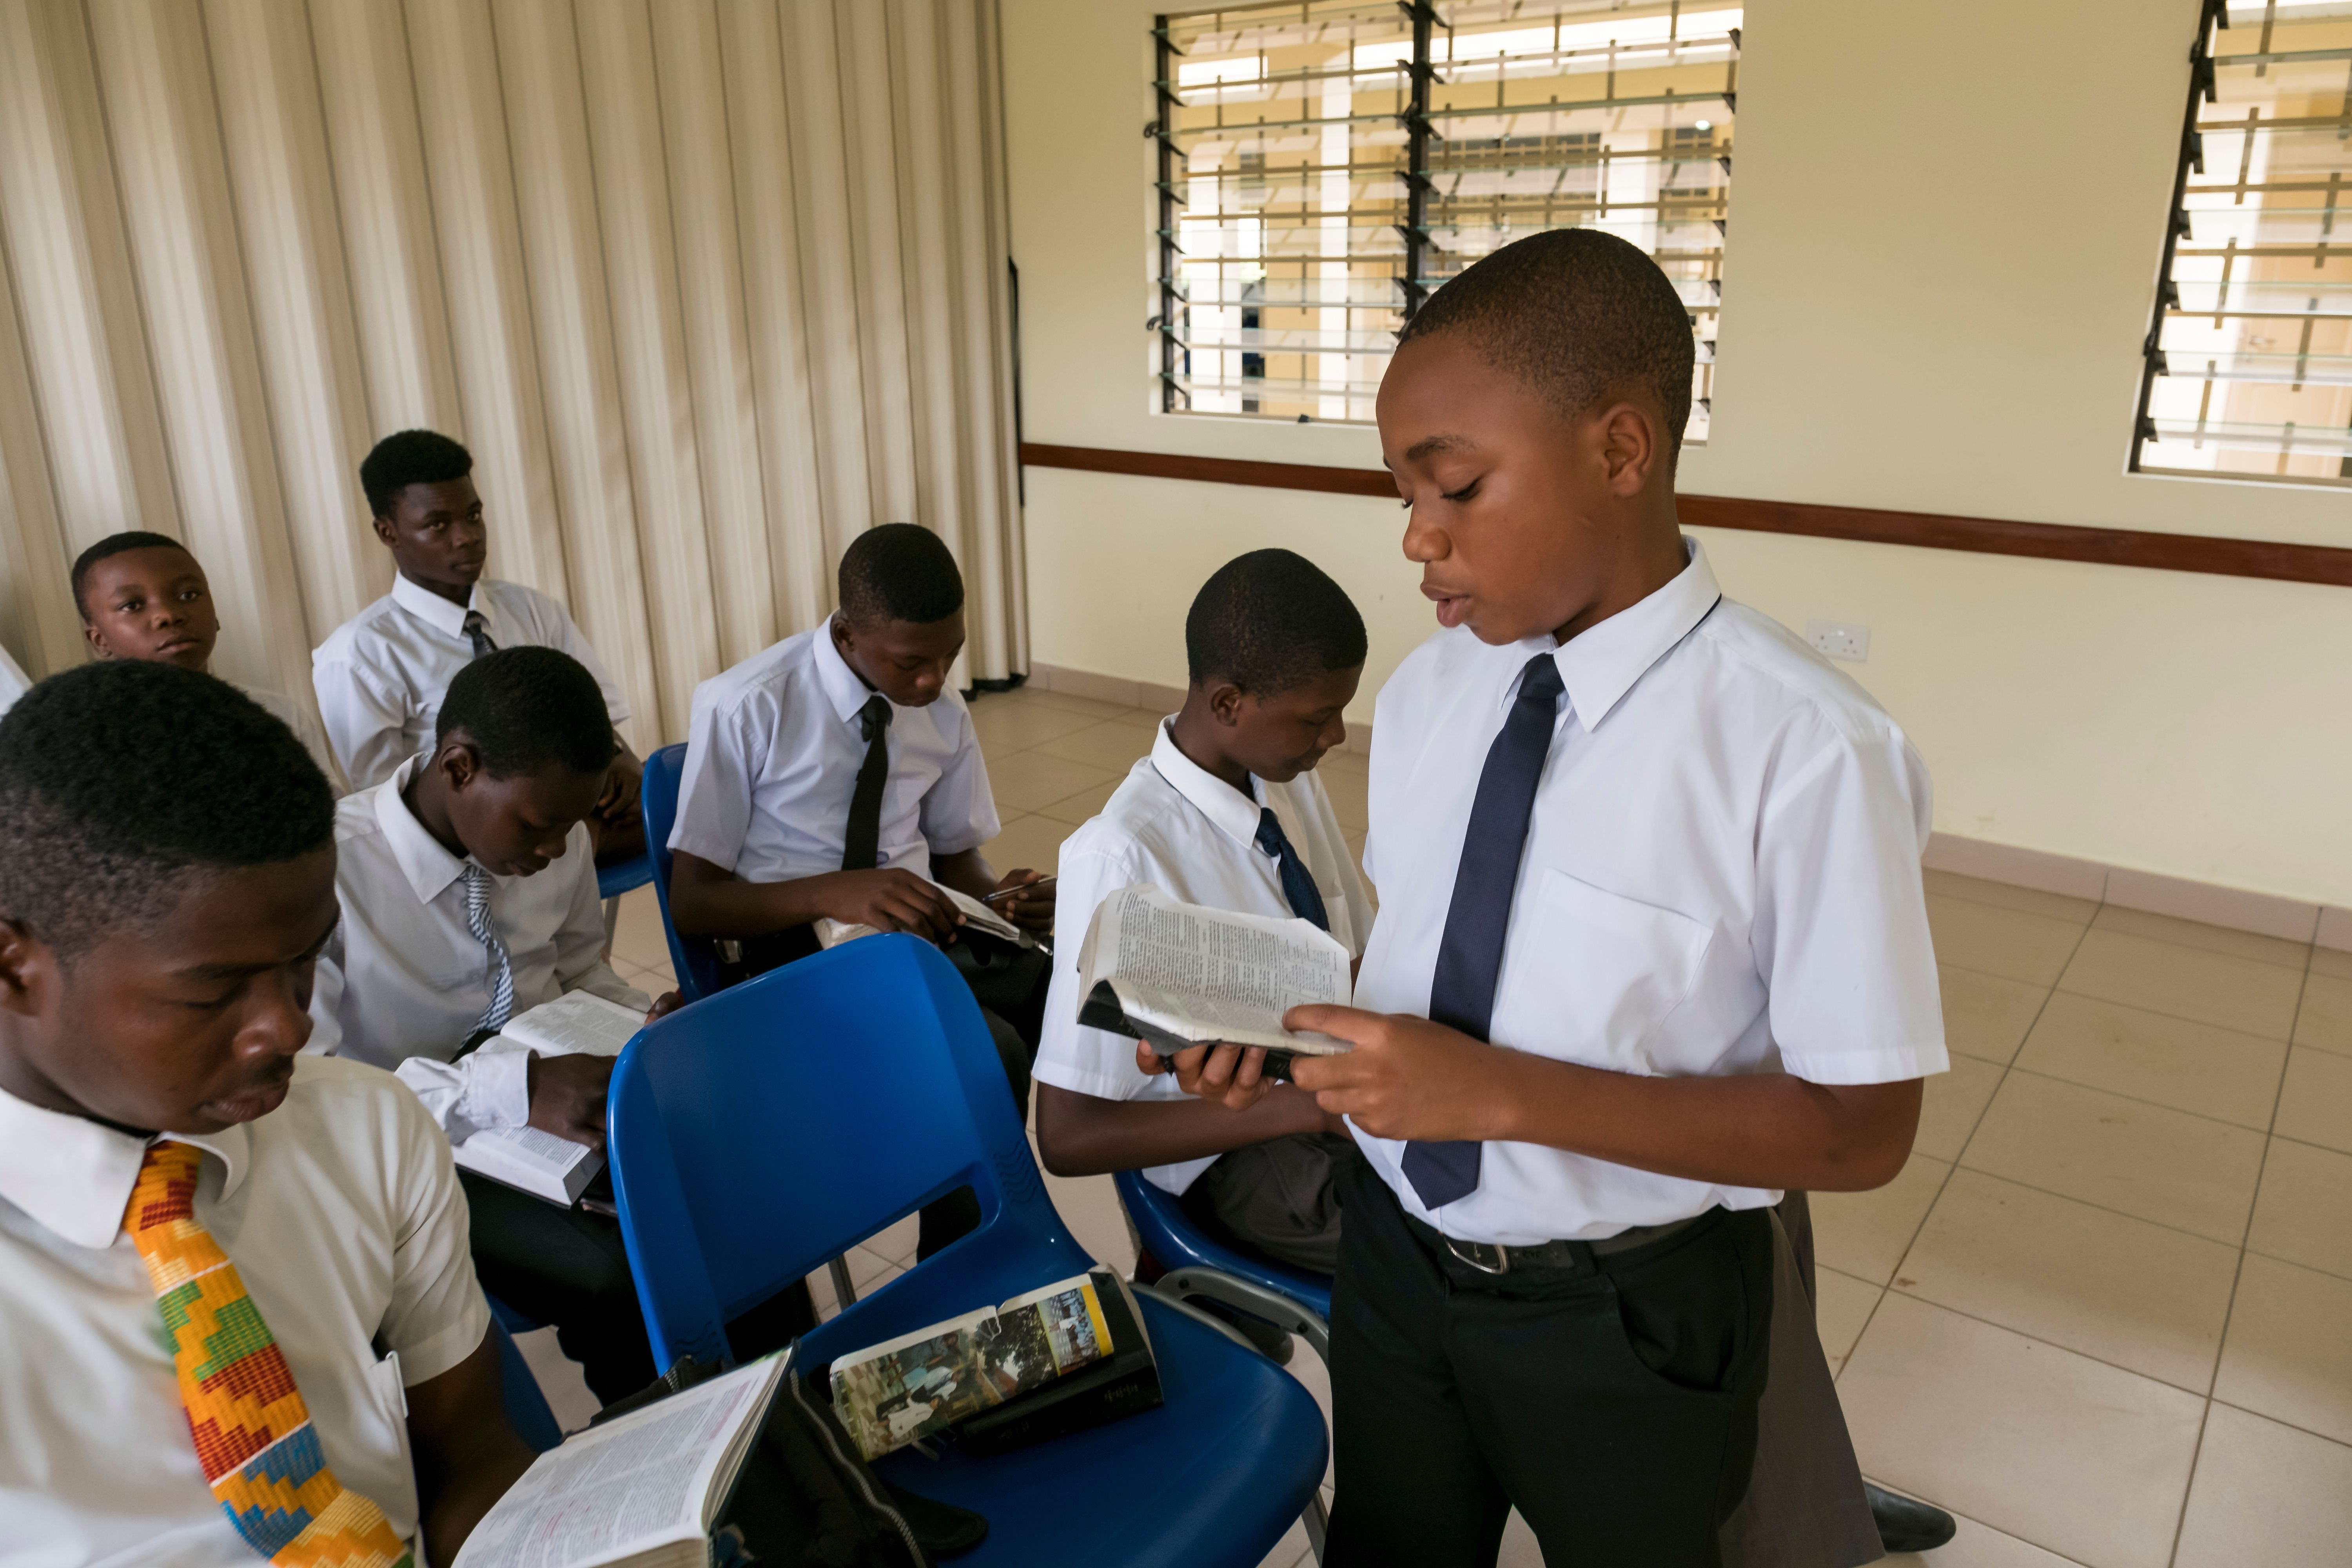 A group of young men sitting in a priesthood class in Ghana. One young man is standing and reading from the scriptures.